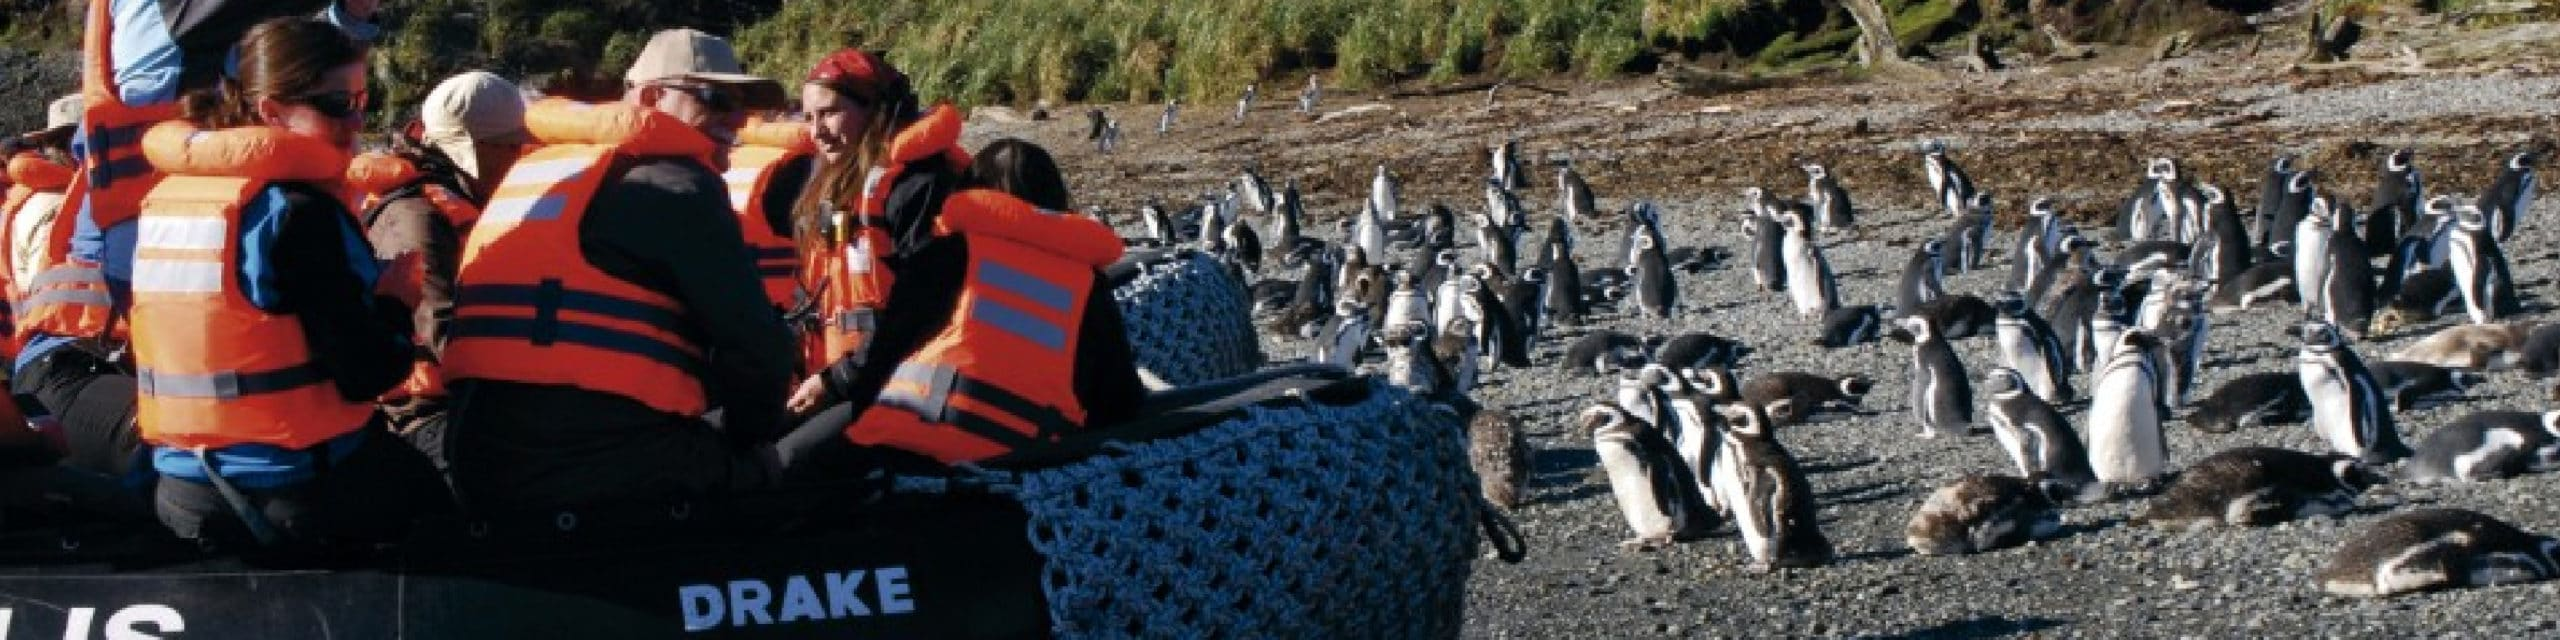 Penguin Colony of Magdalena Island with Australis Cruise Expedition by RipioTurismo Incoming Tour Operator Argentina and Chile